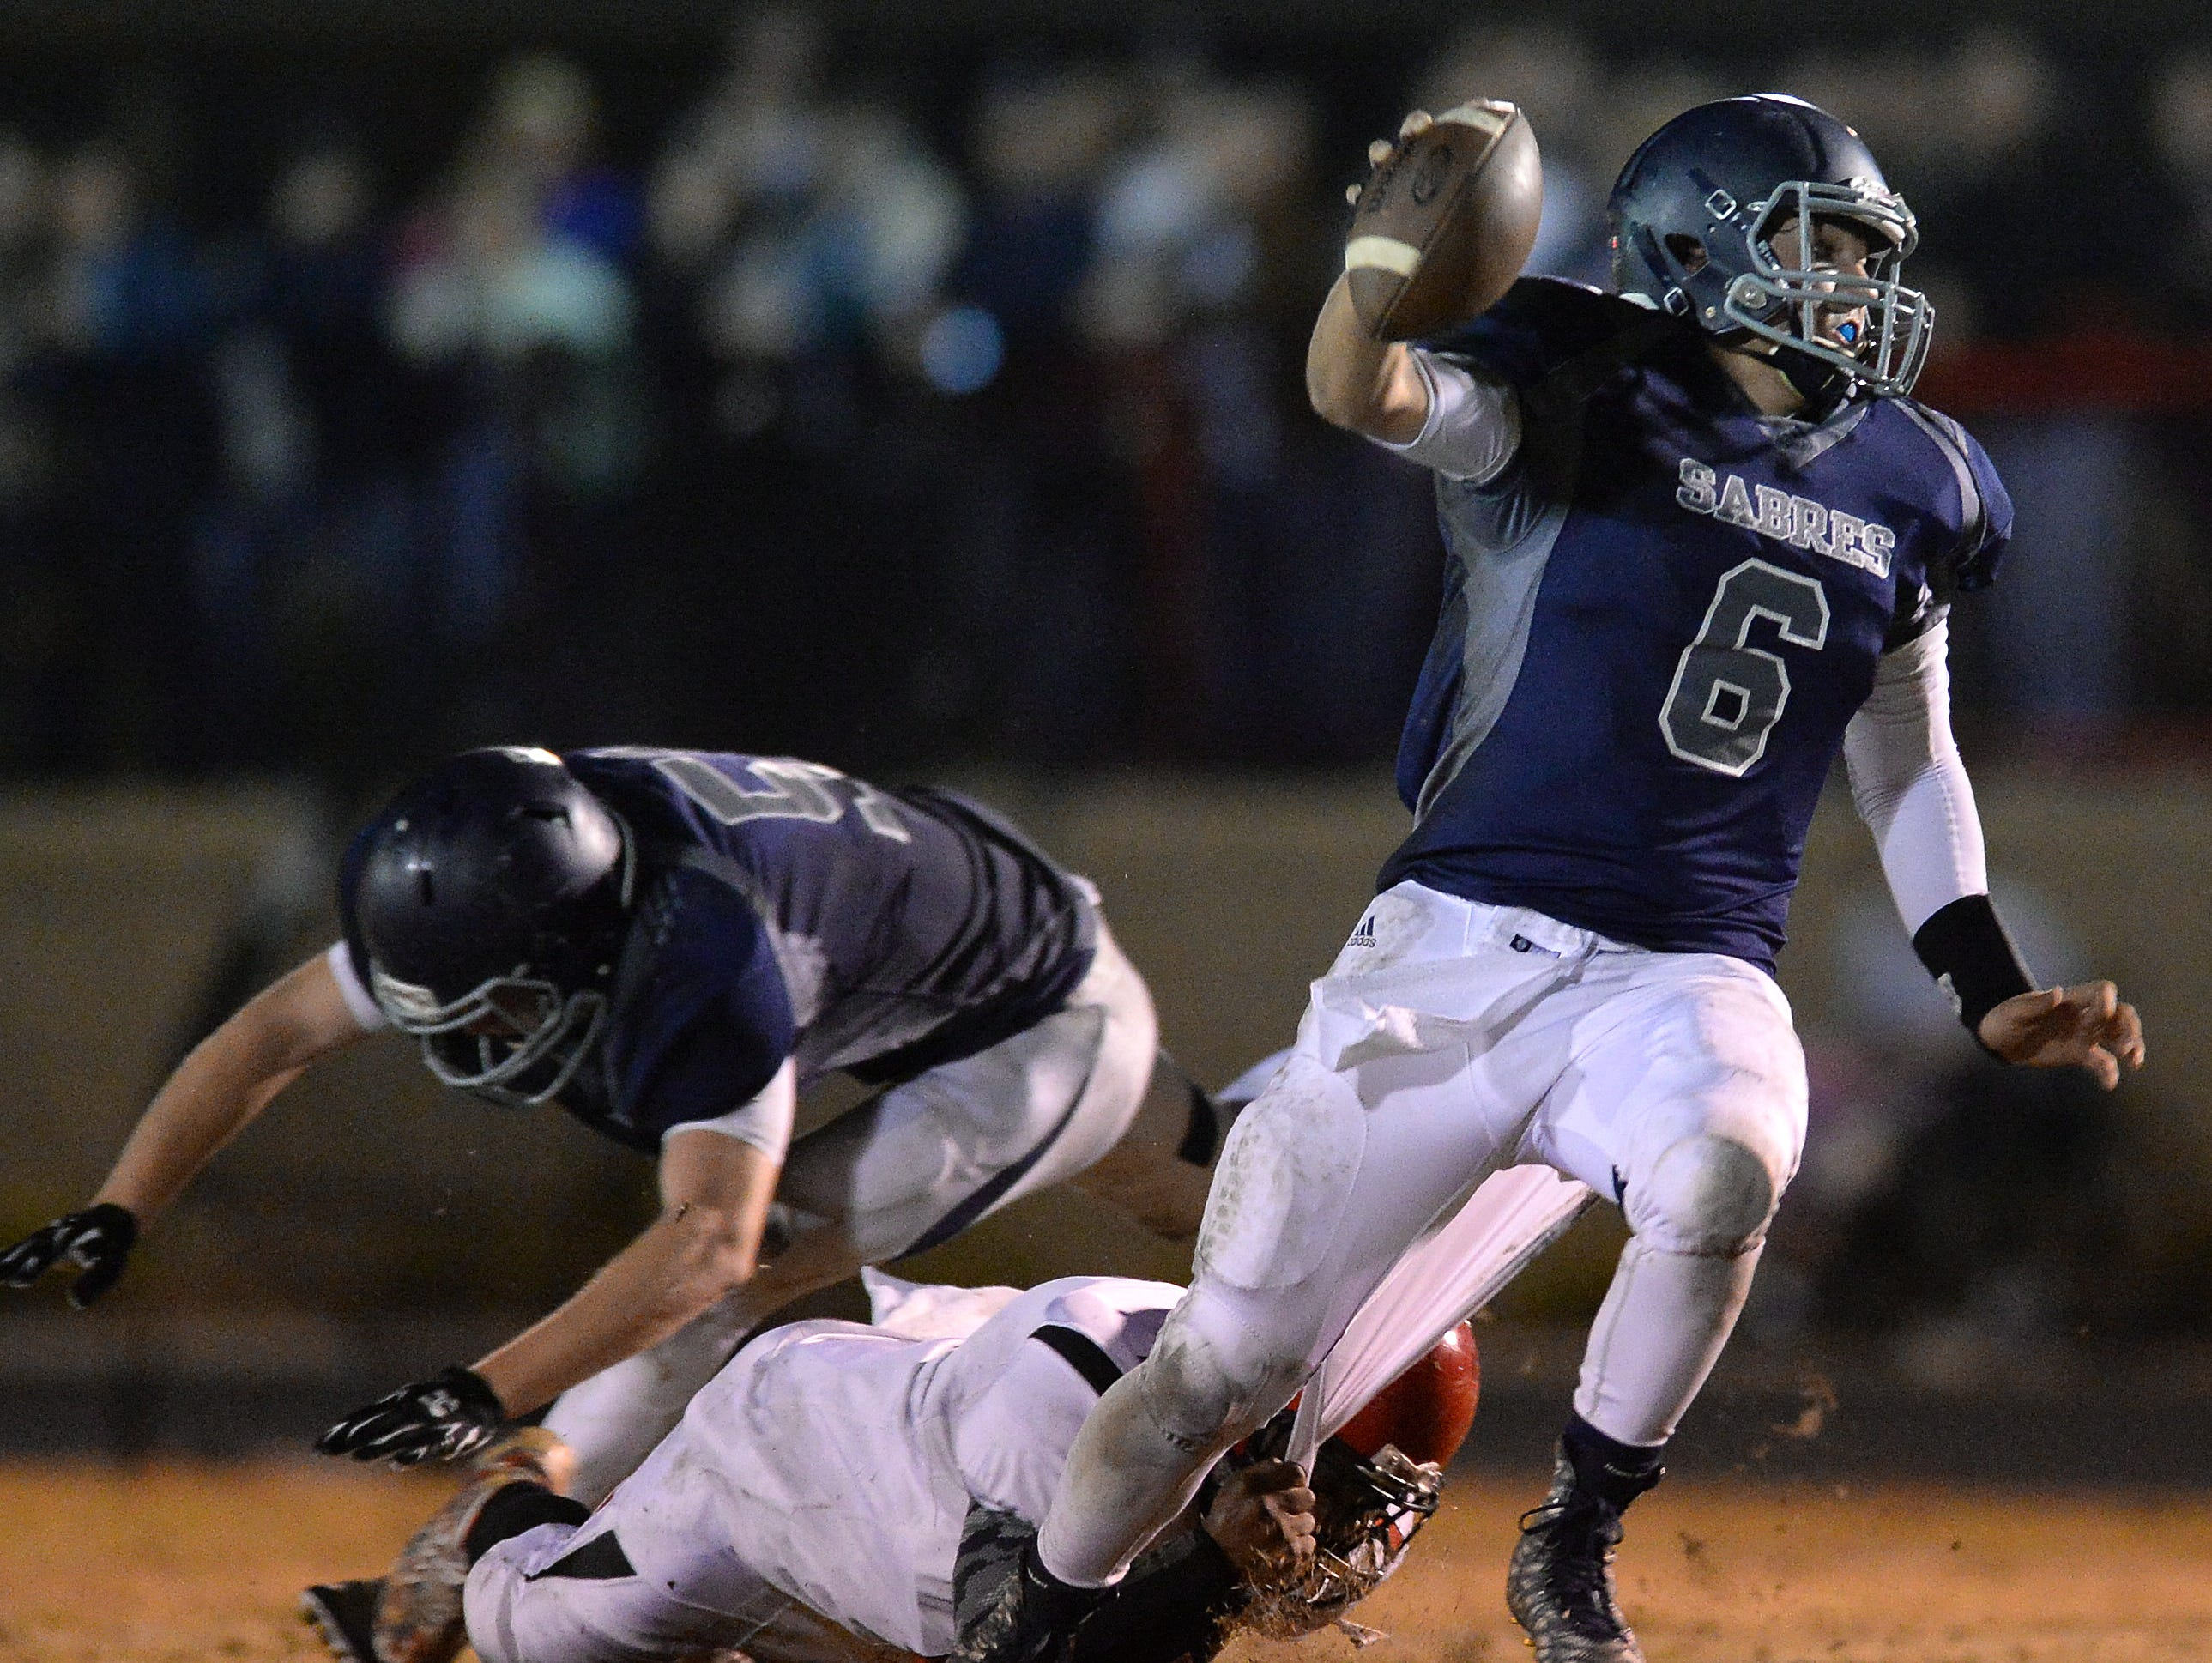 Southside Christian quarterback Clayton Coulter (6) scrambles past McBee's Quentin Tedder (15) during the Class A Division I playoffs Friday, November 27, 2015.